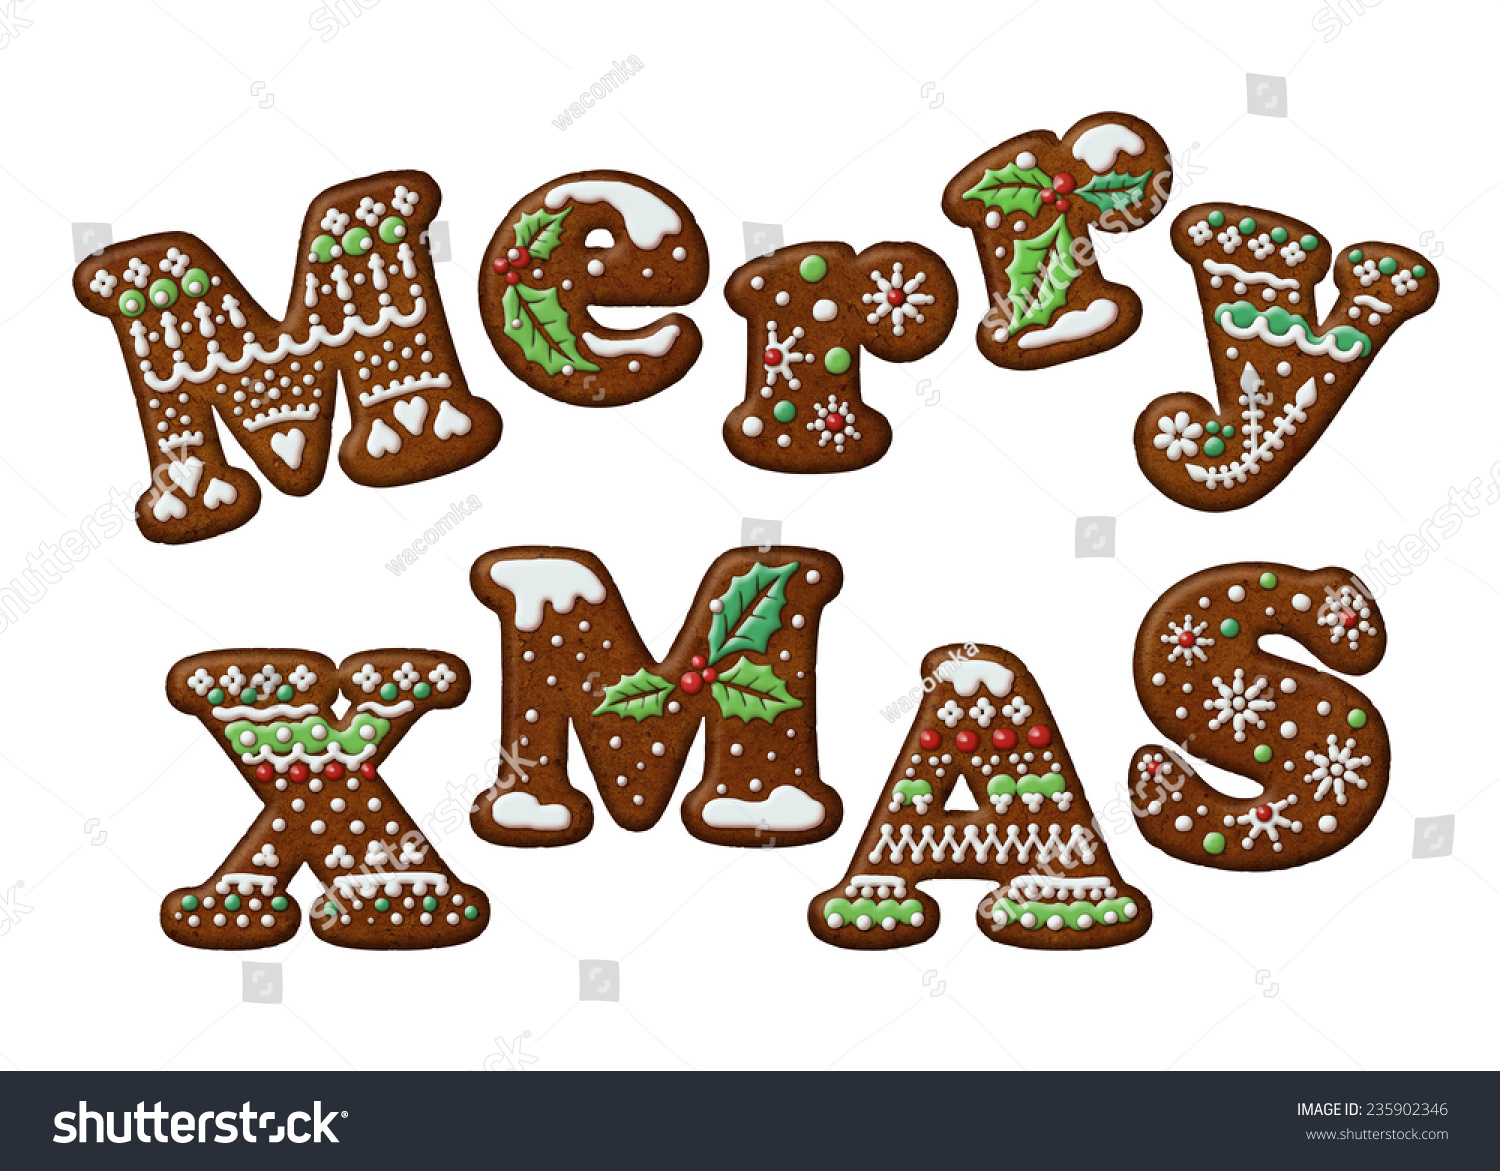 merry christmas words decorated gingerbread cookies illustration isolated letters